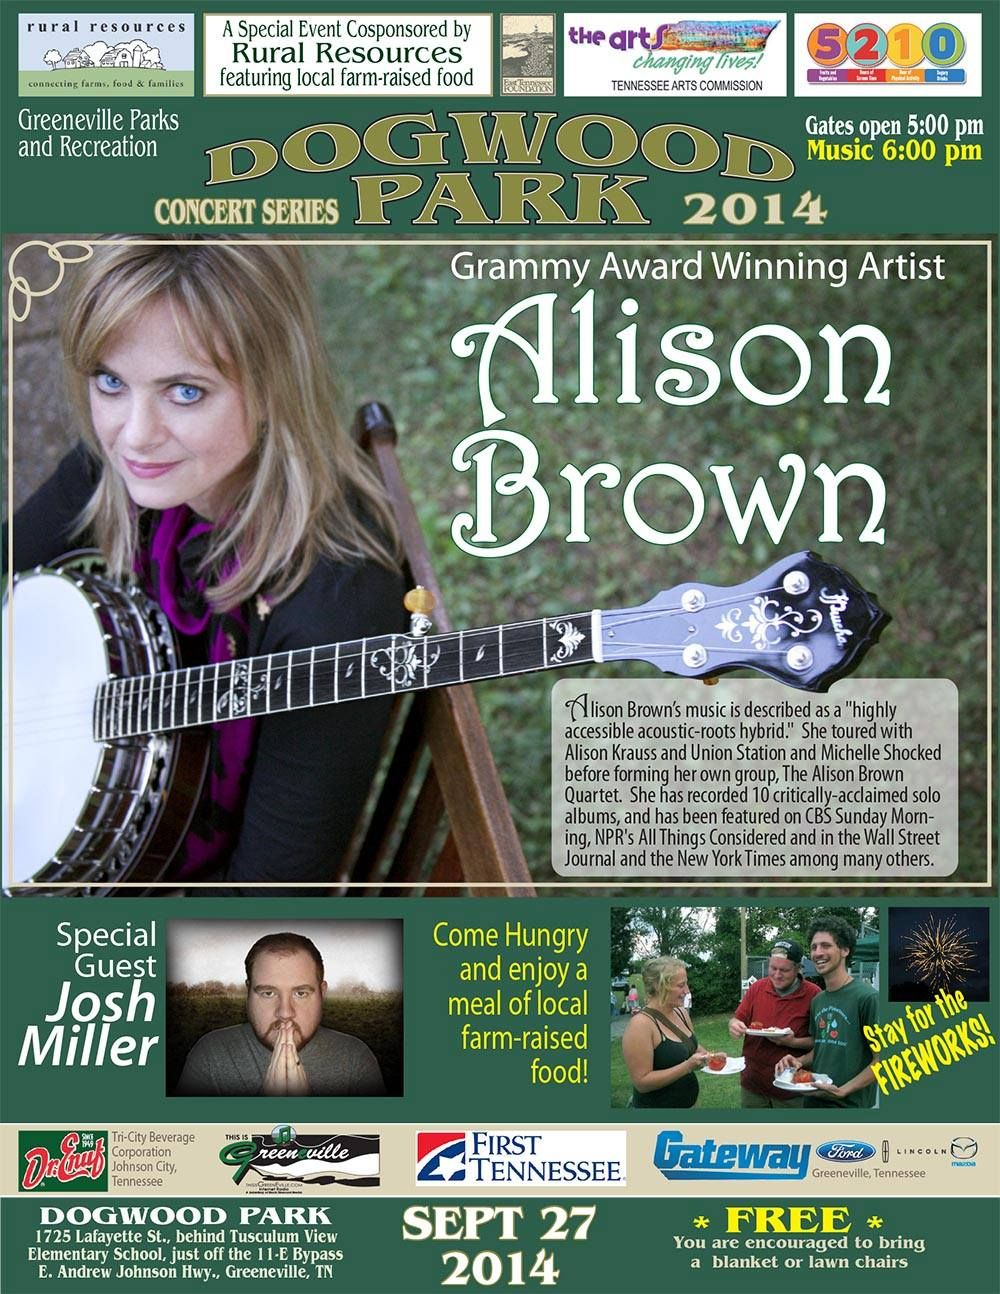 Greeneville's own Rural Resources co-hosting this event featuring Grammy Award Winner Alison Brown and her group.